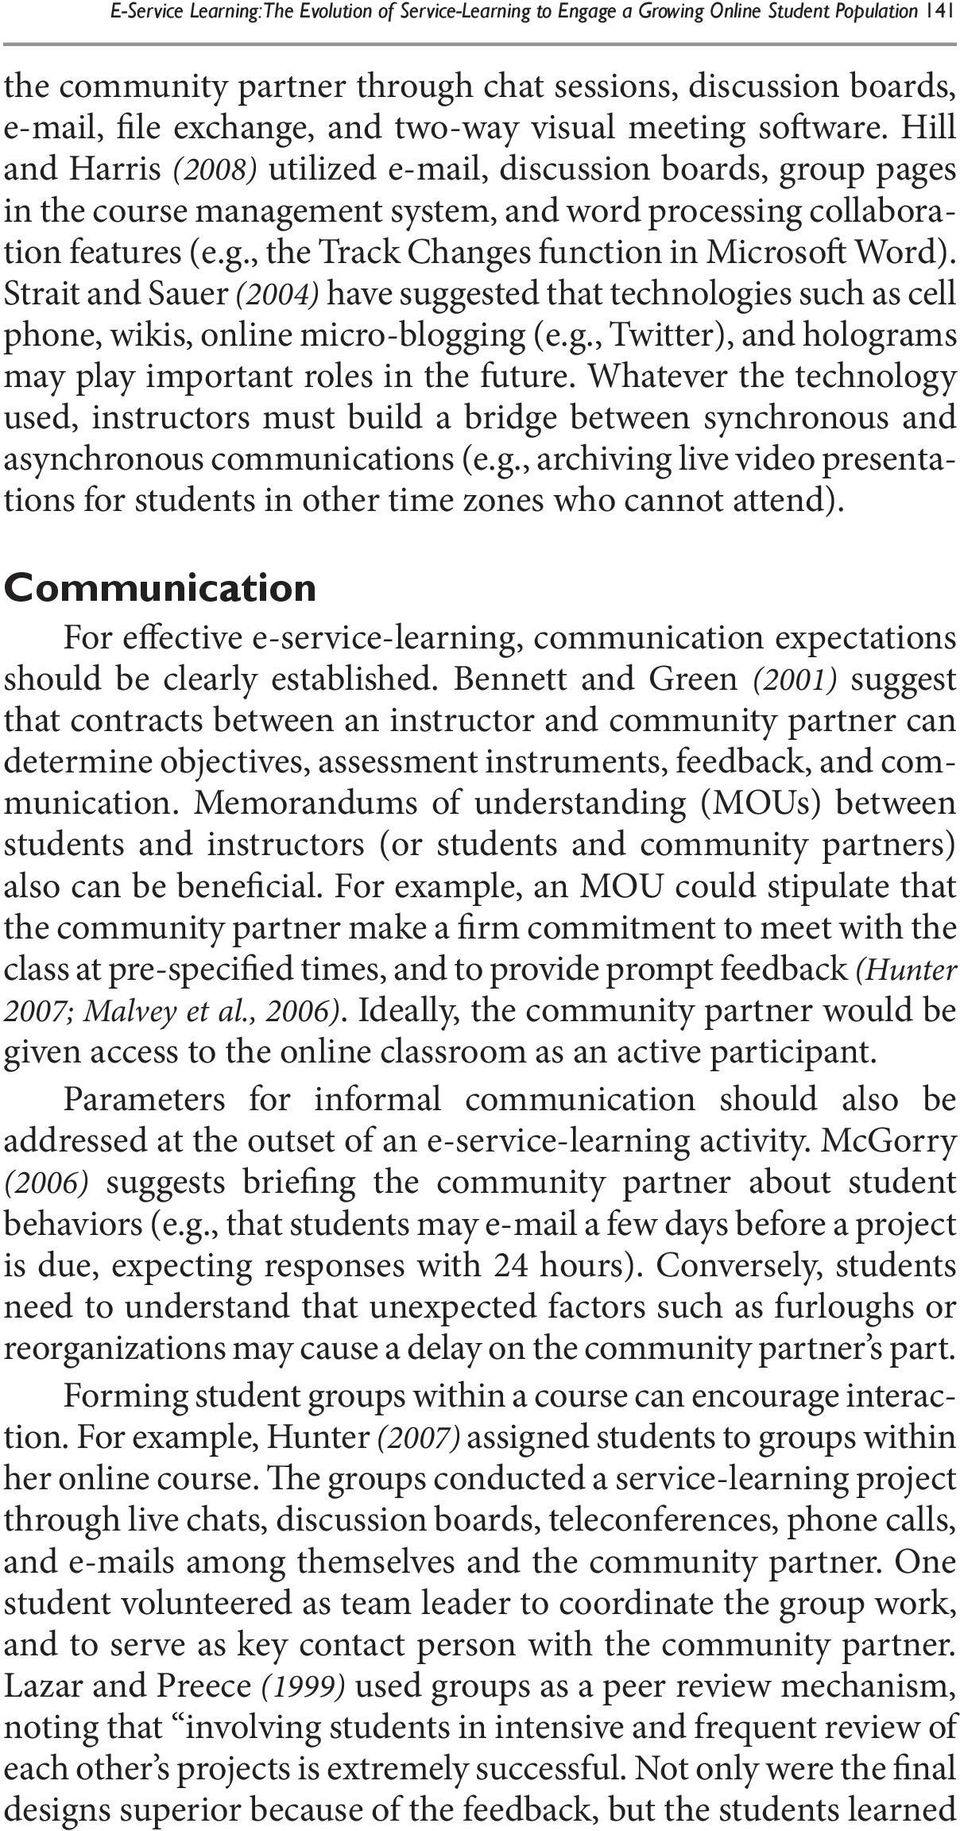 Strait and Sauer (2004) have suggested that technologies such as cell phone, wikis, online micro-blogging (e.g., Twitter), and holograms may play important roles in the future.